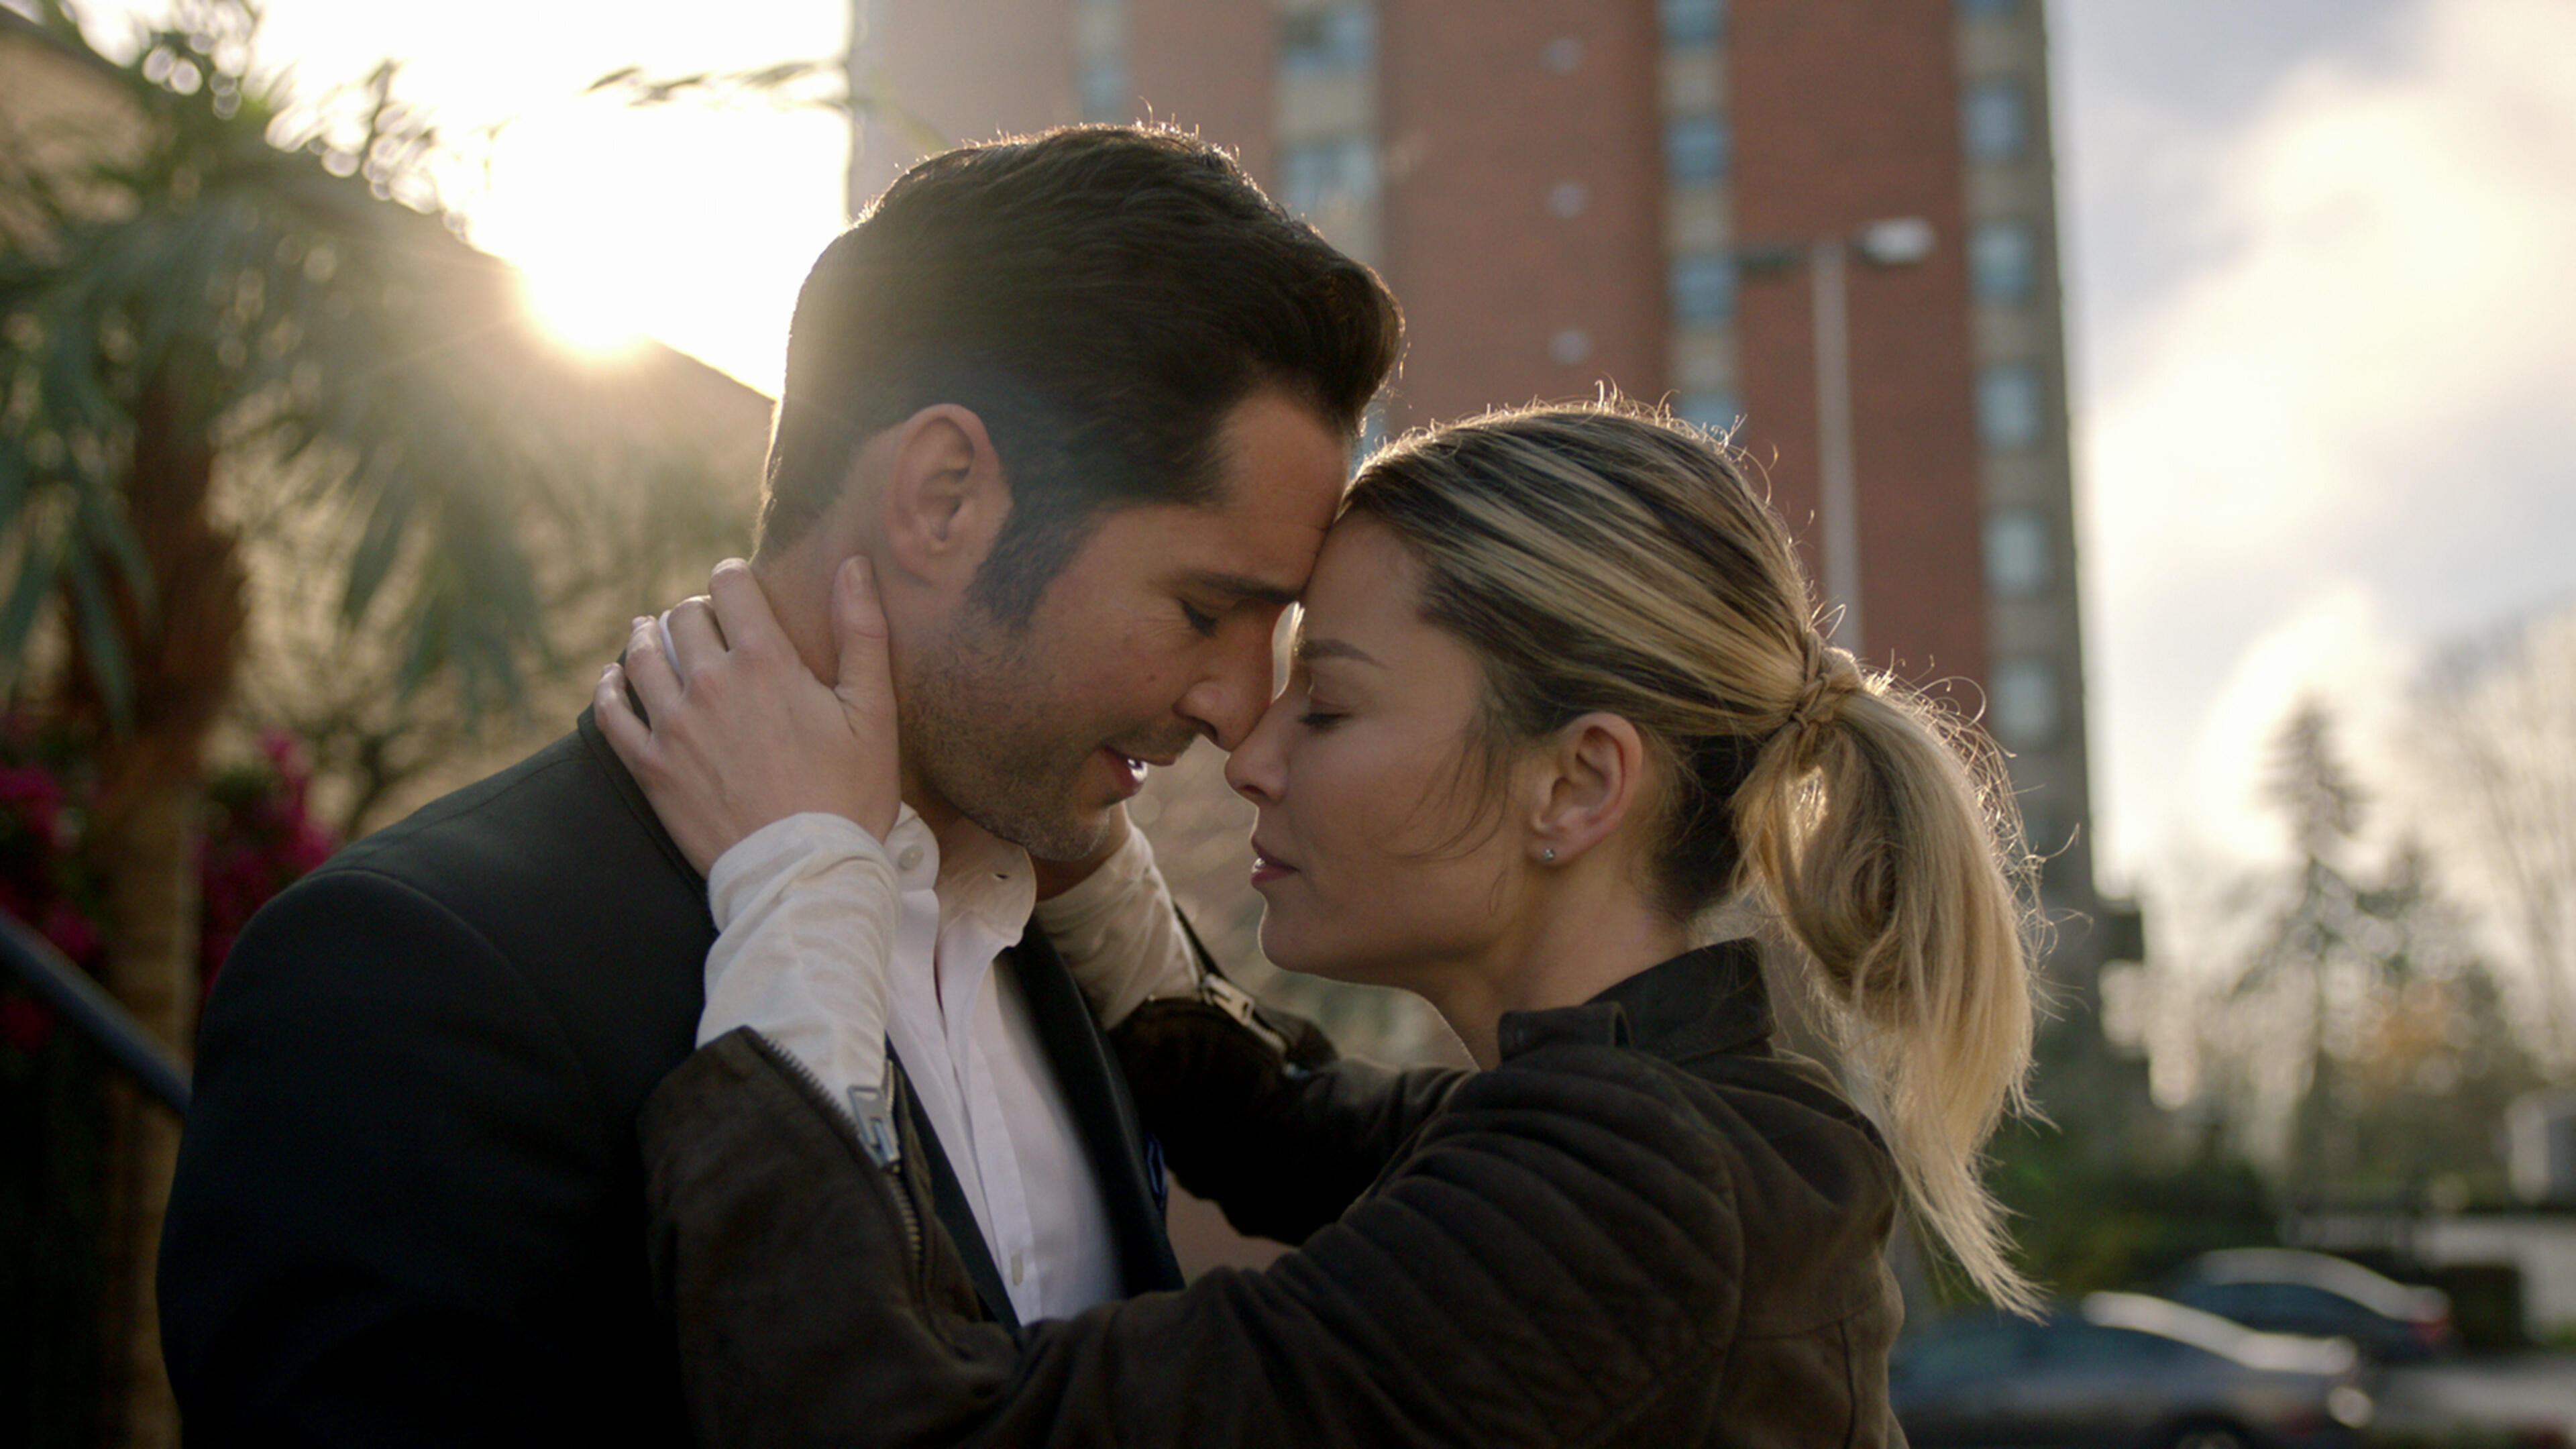 lucifer-season5-episode10-00-50-38-23